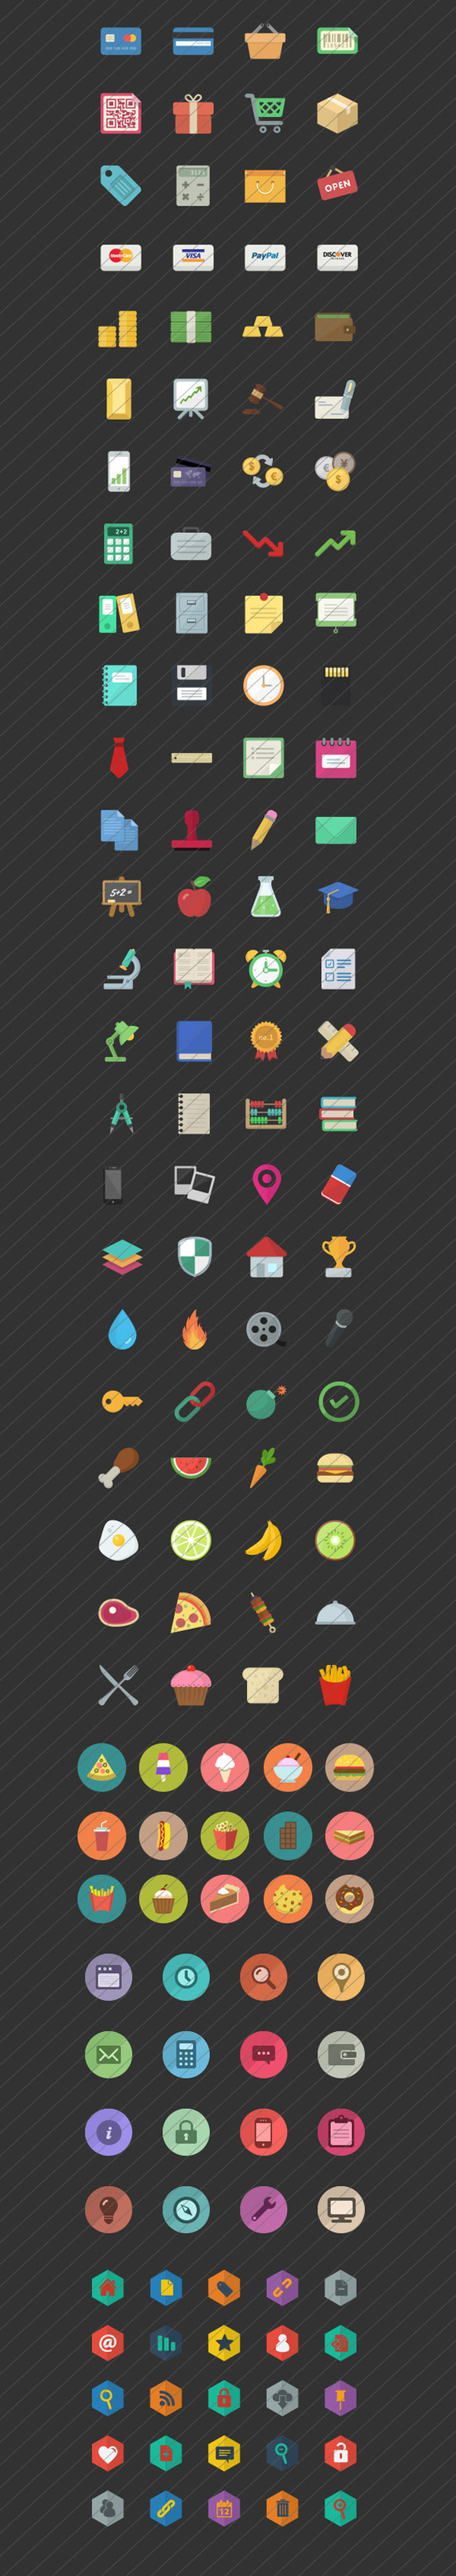 Flat Icons Bundle Pack